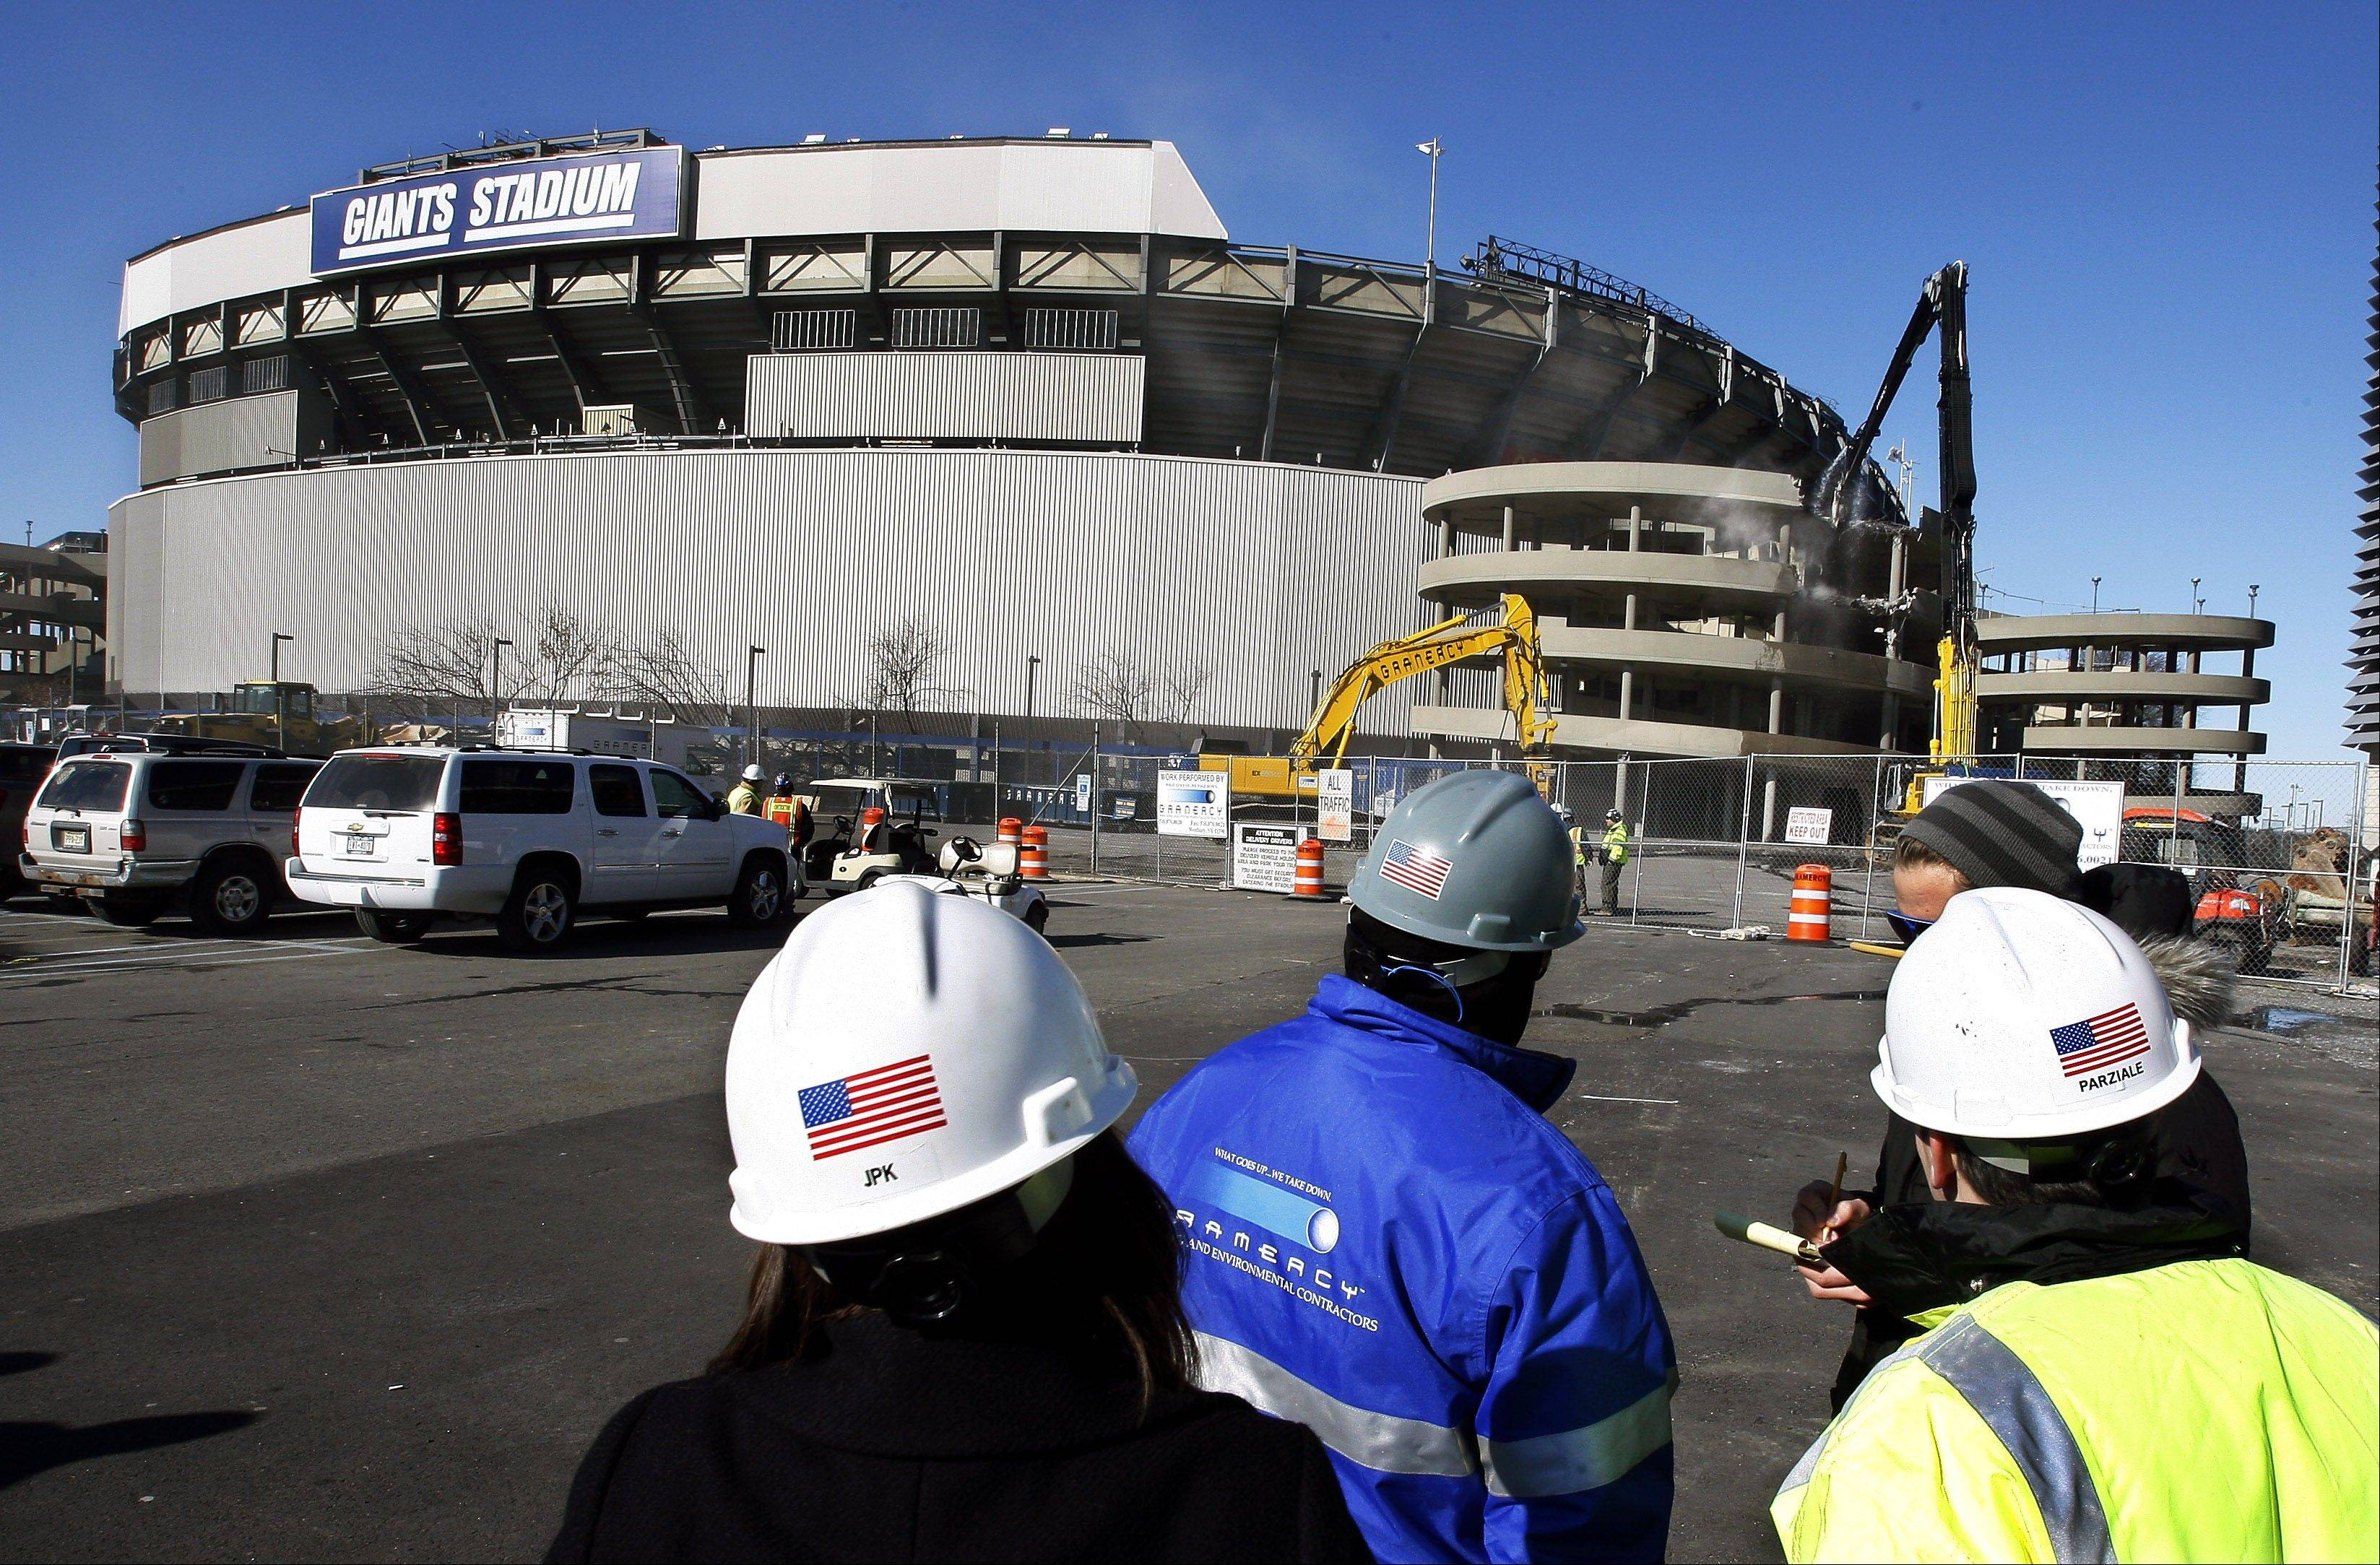 "Feb. 4, 2010: Workers watch as a machine begins the demolition of Giants Stadium, in East Rutherford, N.J. Self-described hit man Donald ""Tony the Greek"" Frankos claims ex-Teamsters boss Jimmy Hoffa was buried under Giants Stadium, but the FBI found no evidence to support the claim."